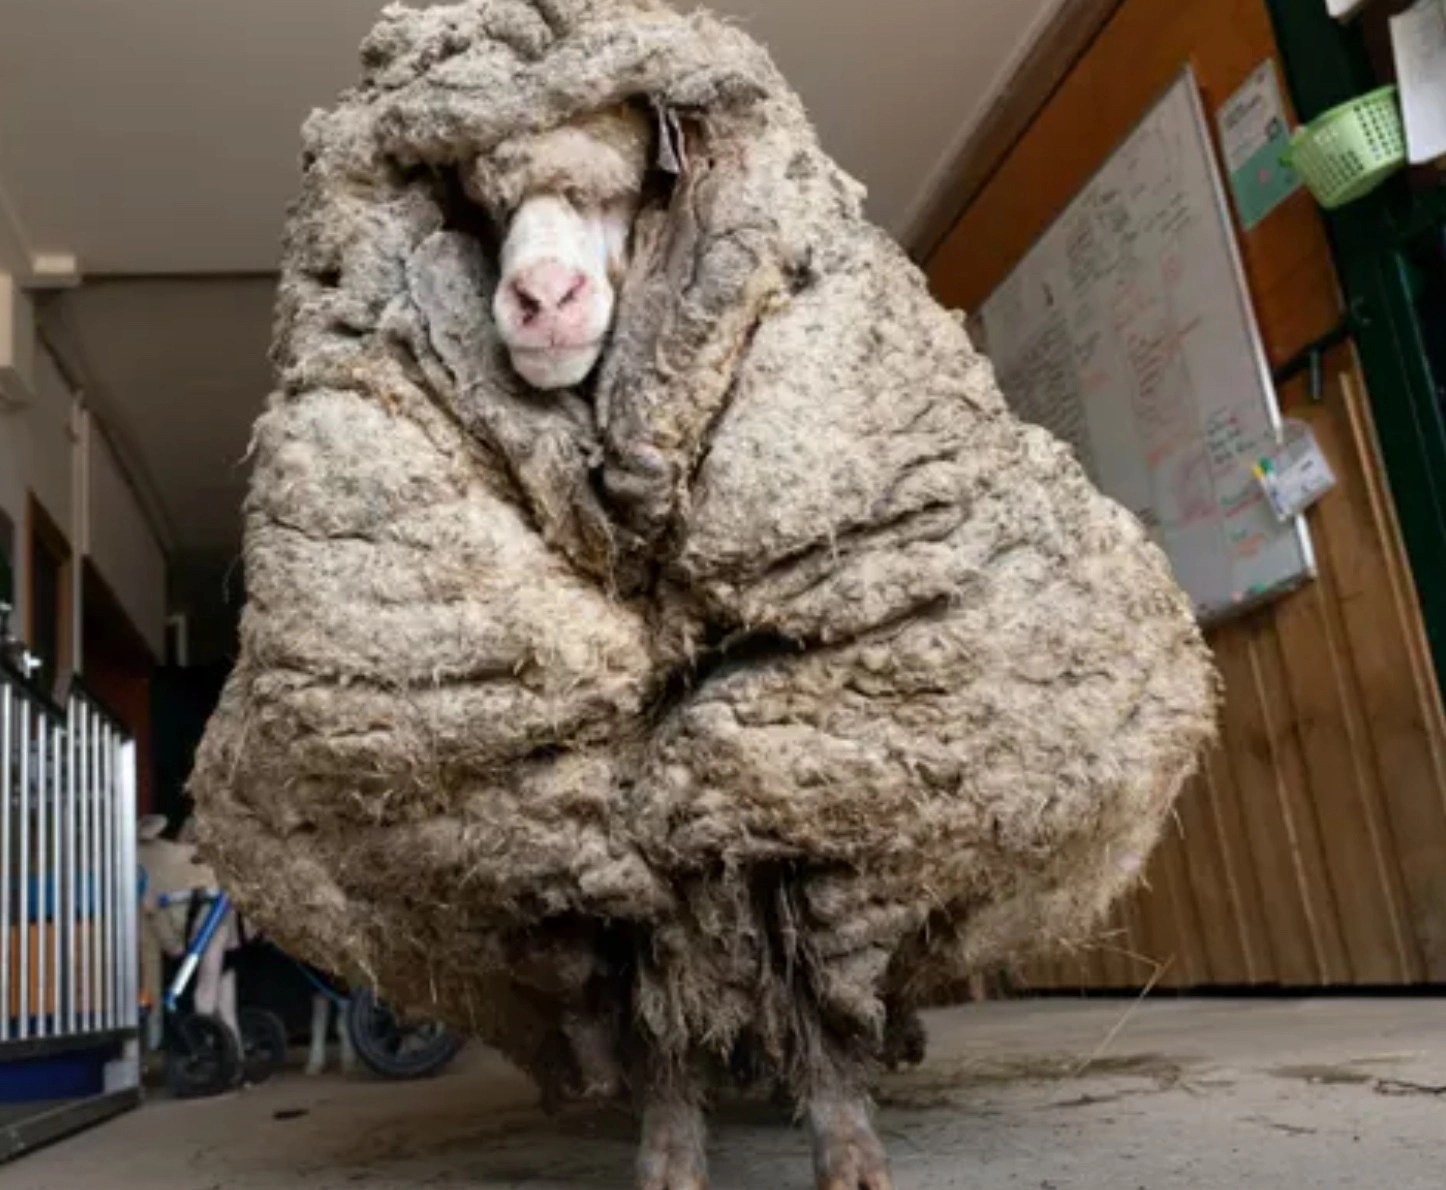 Crazy photo: Wild sheep with insanely overgrown wool sheared of its 78 pound sweater